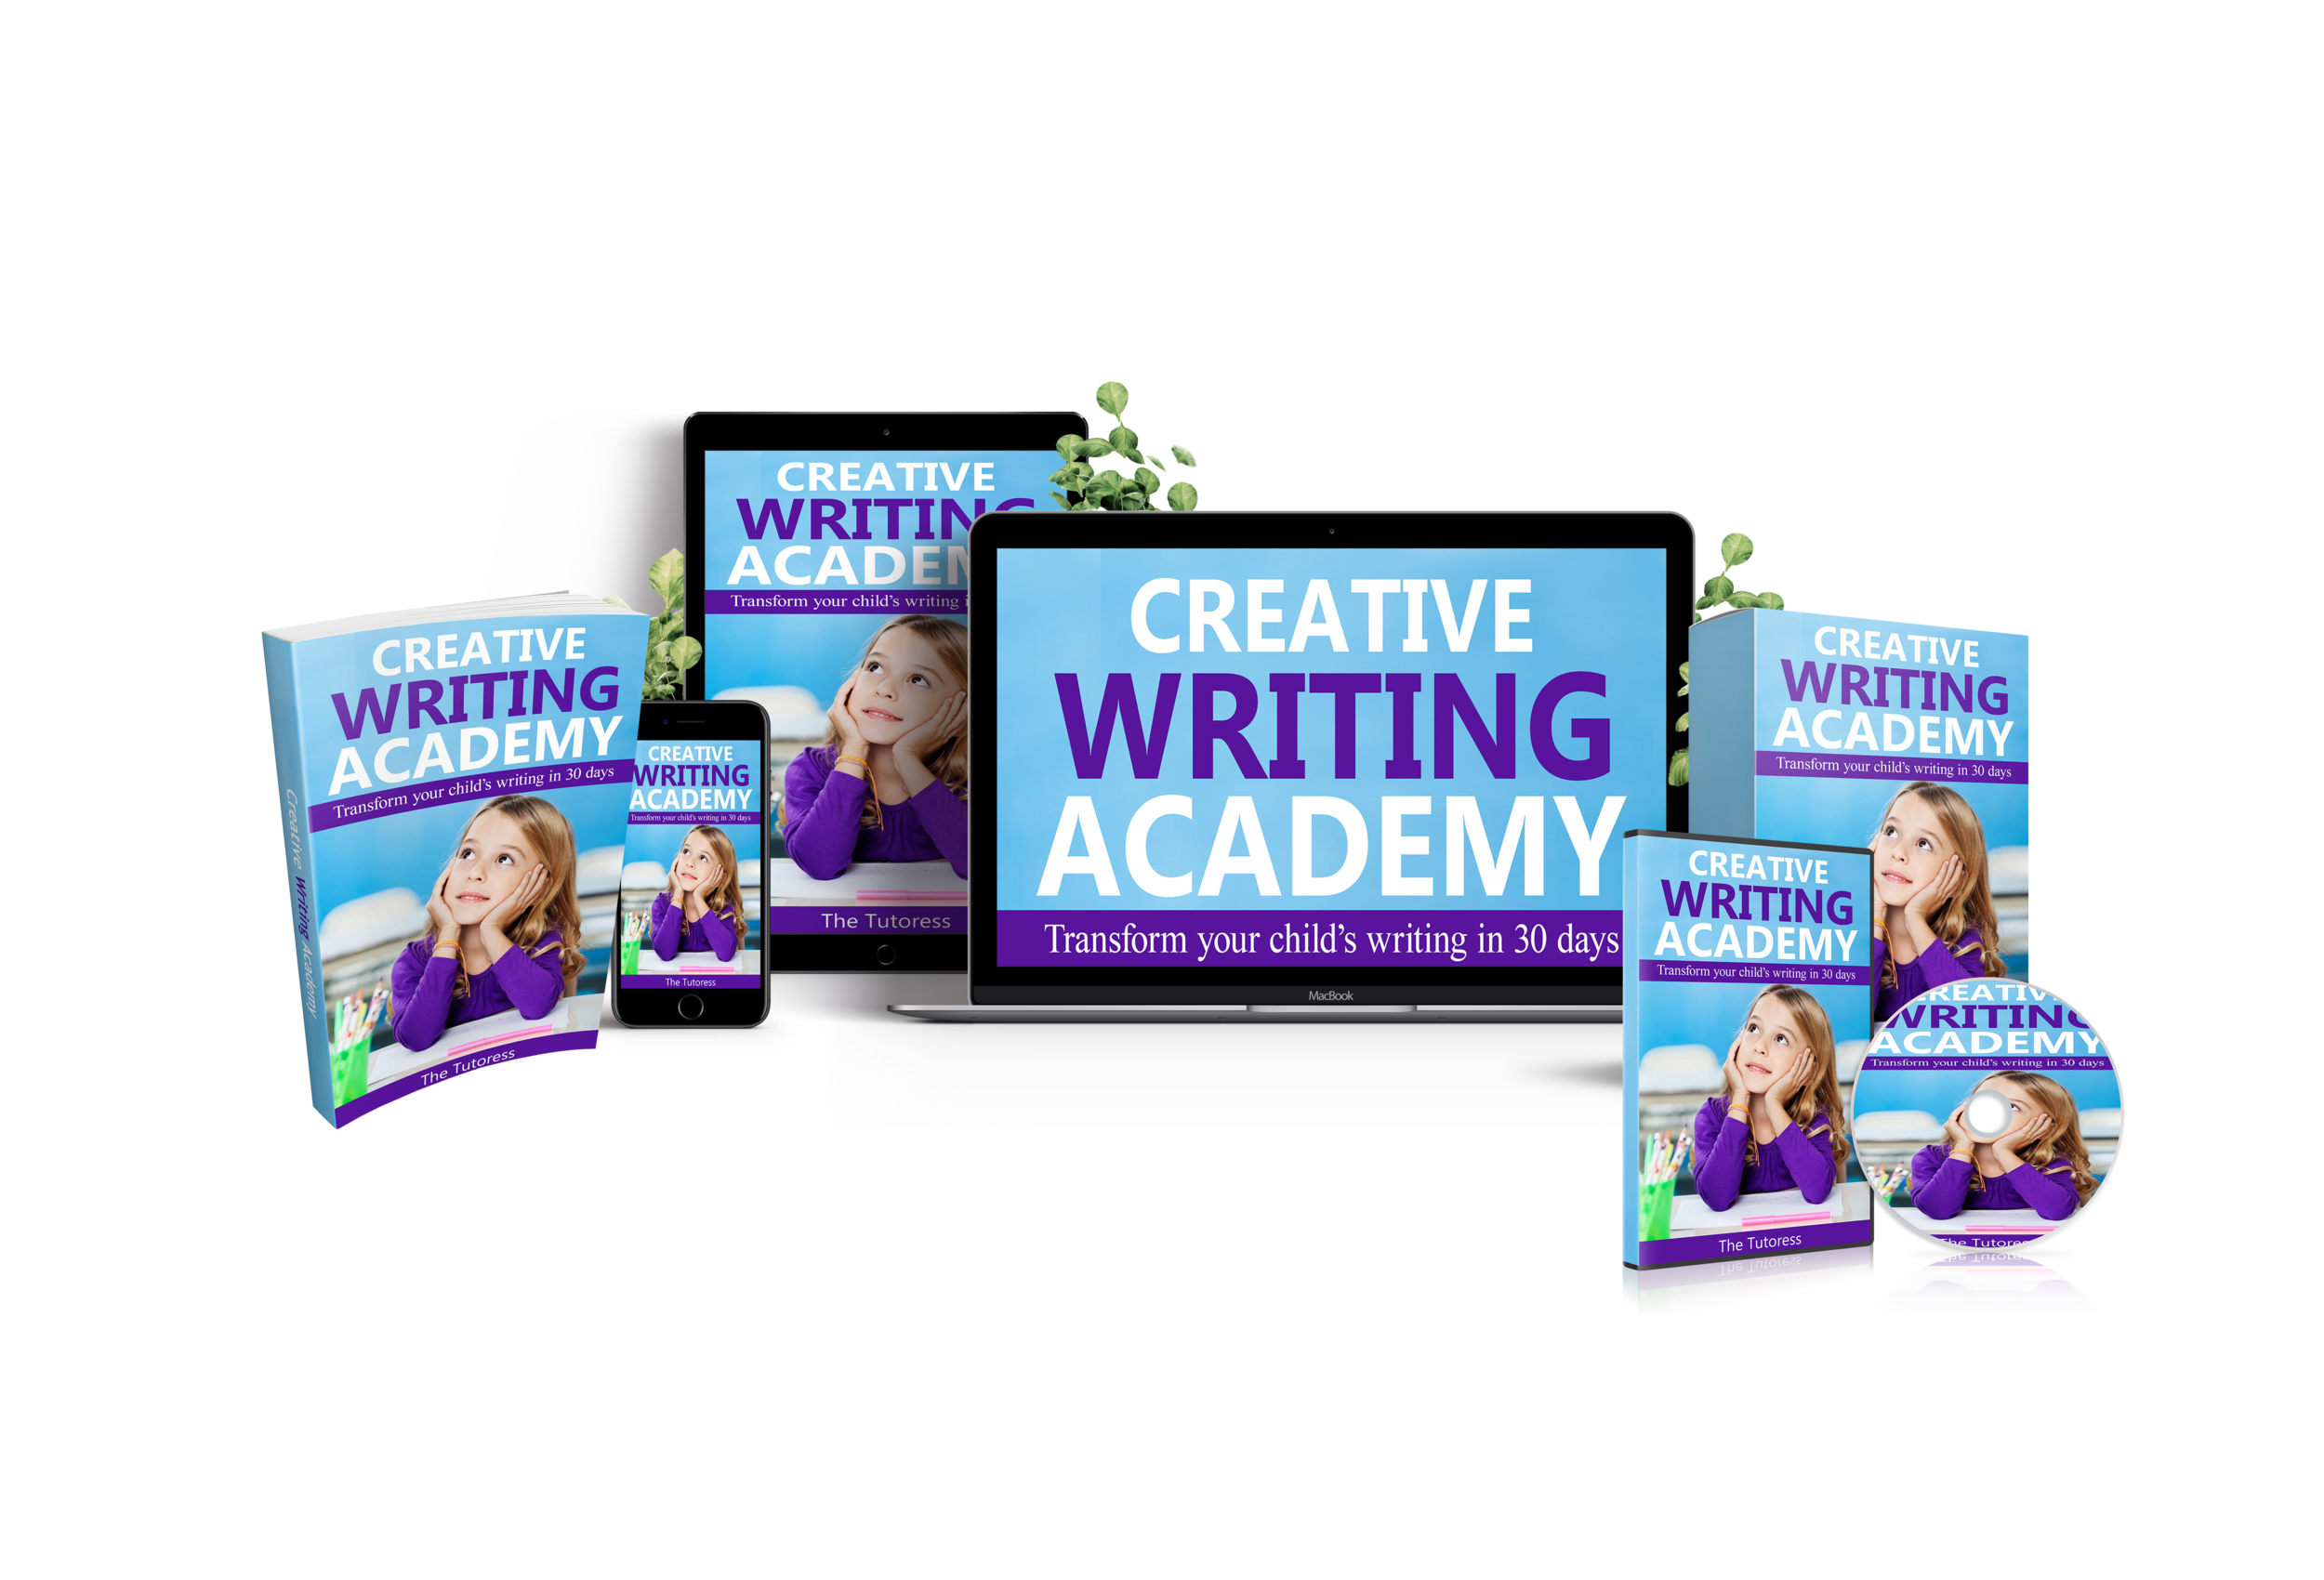 creative writing academy tutoress